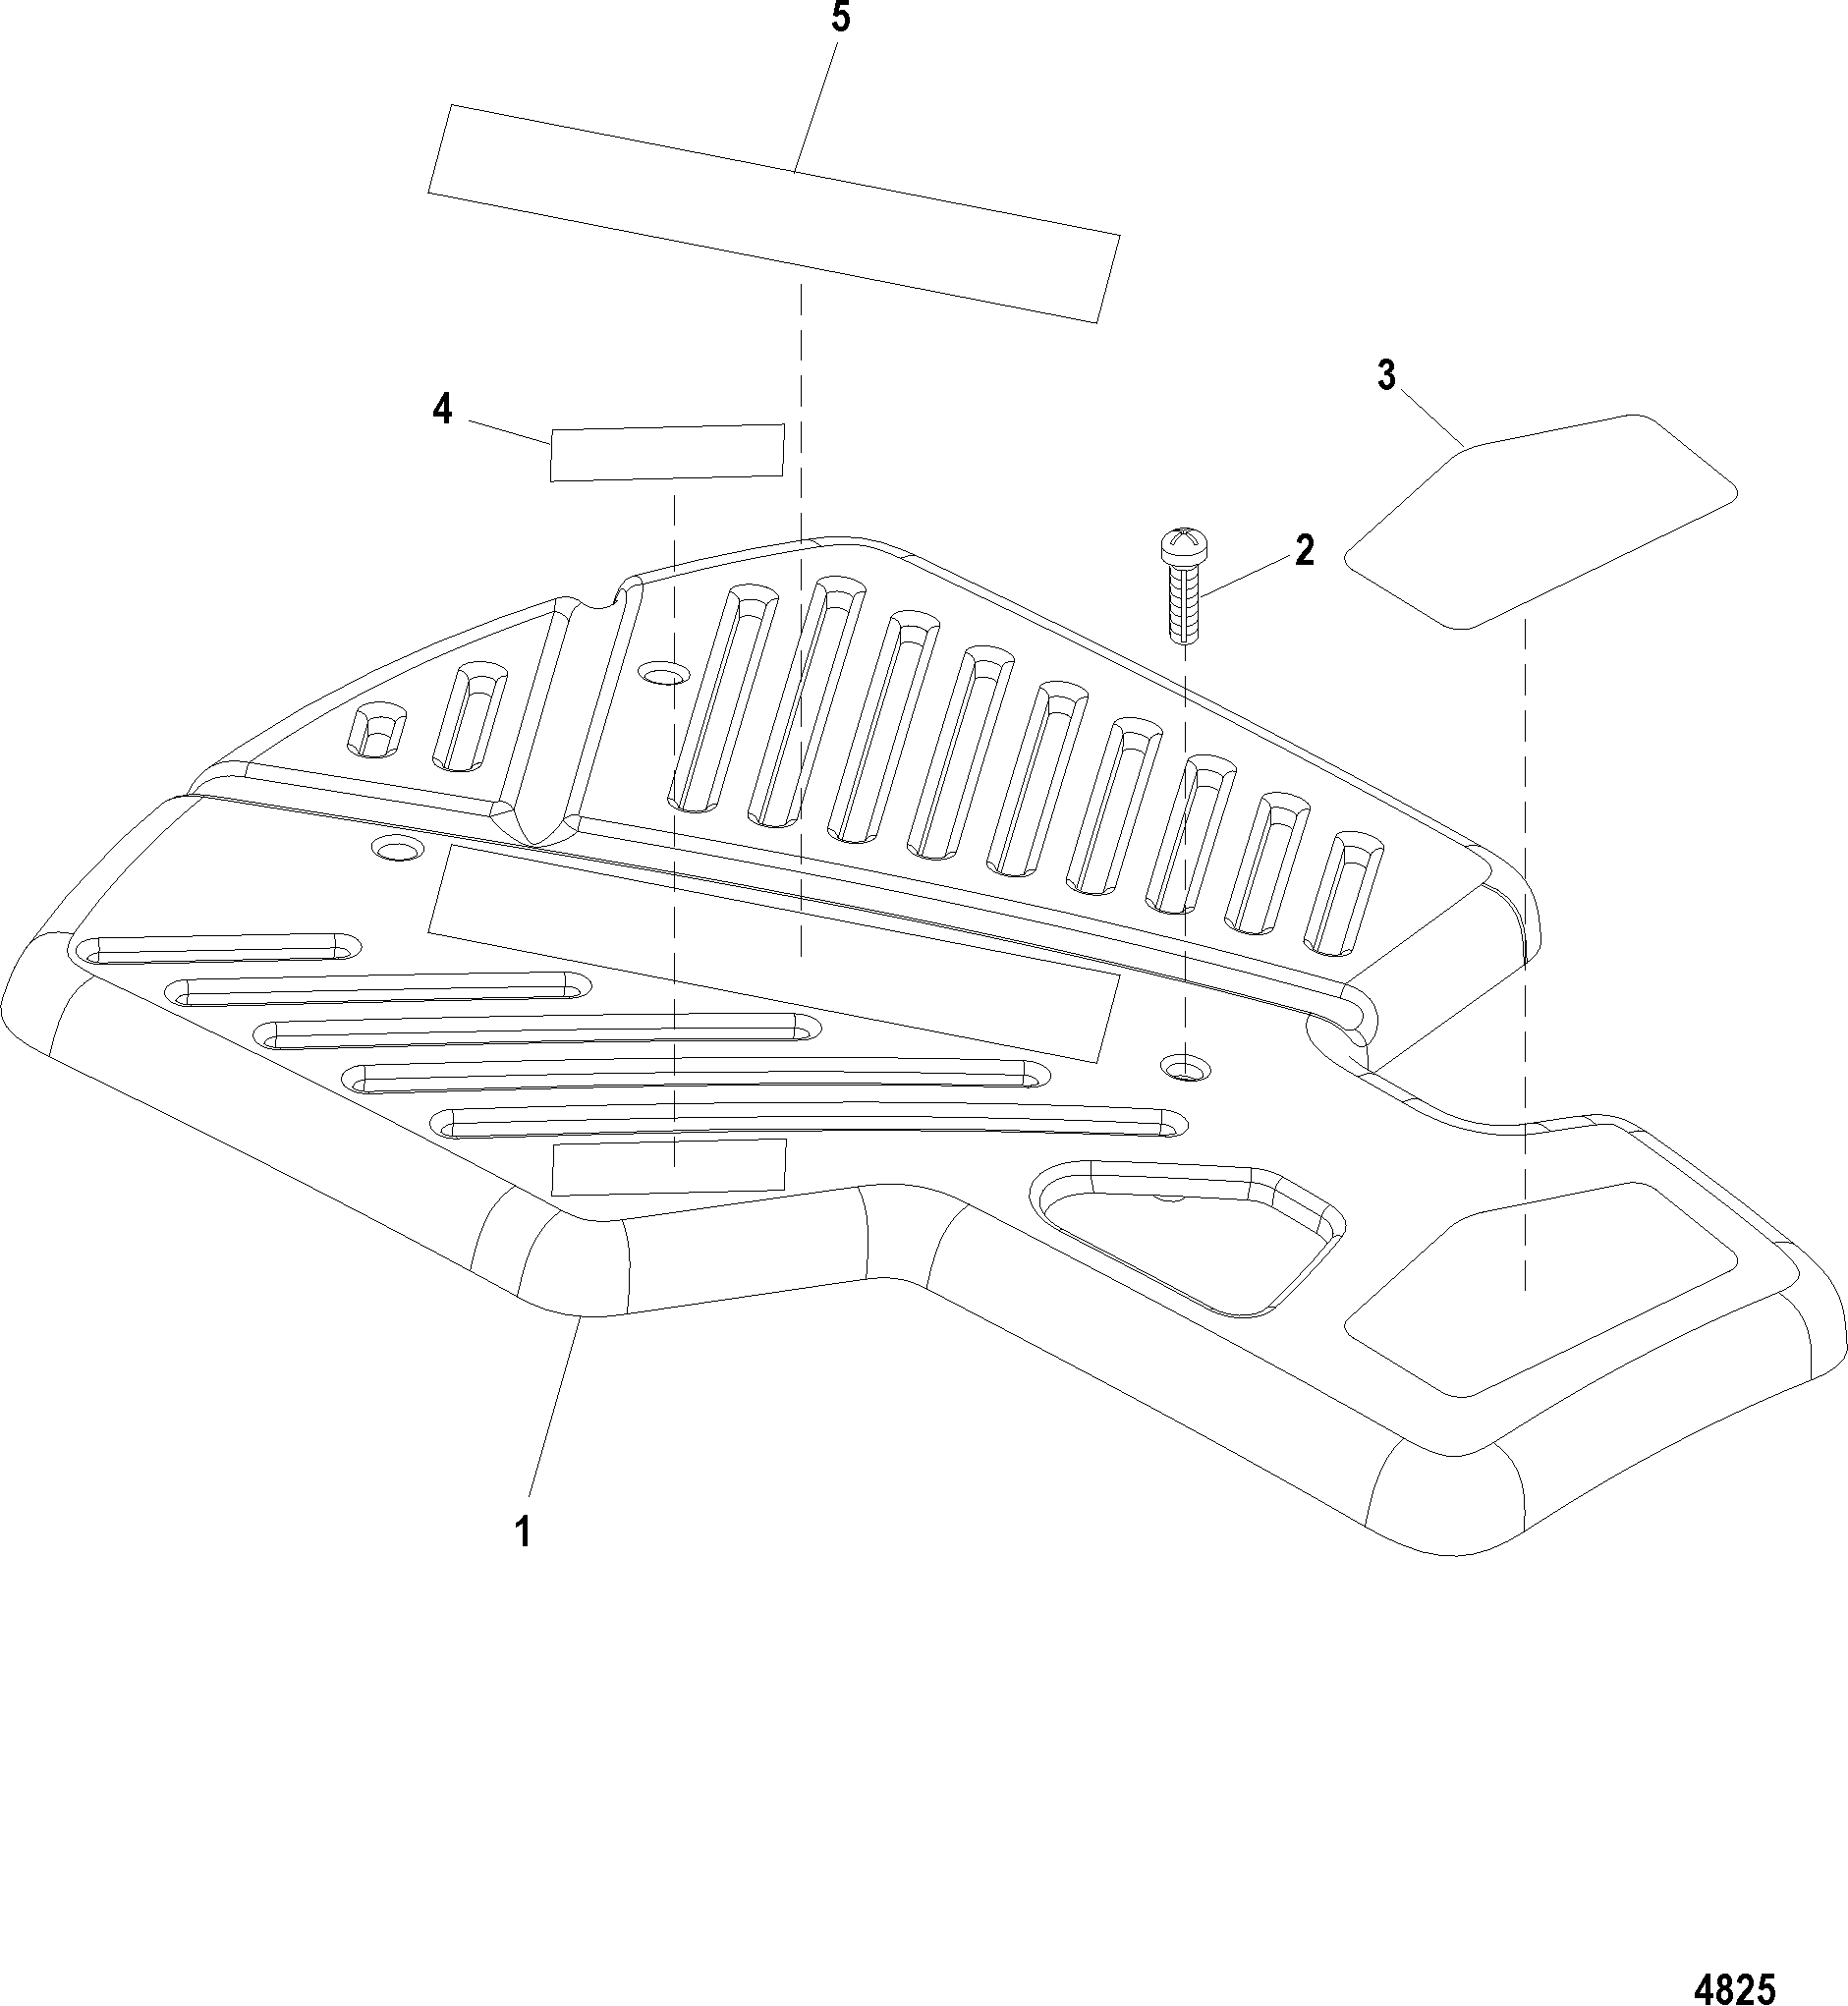 ENGINE COVER FOR MERCRUISER 496 MAG. STERNDRIVE